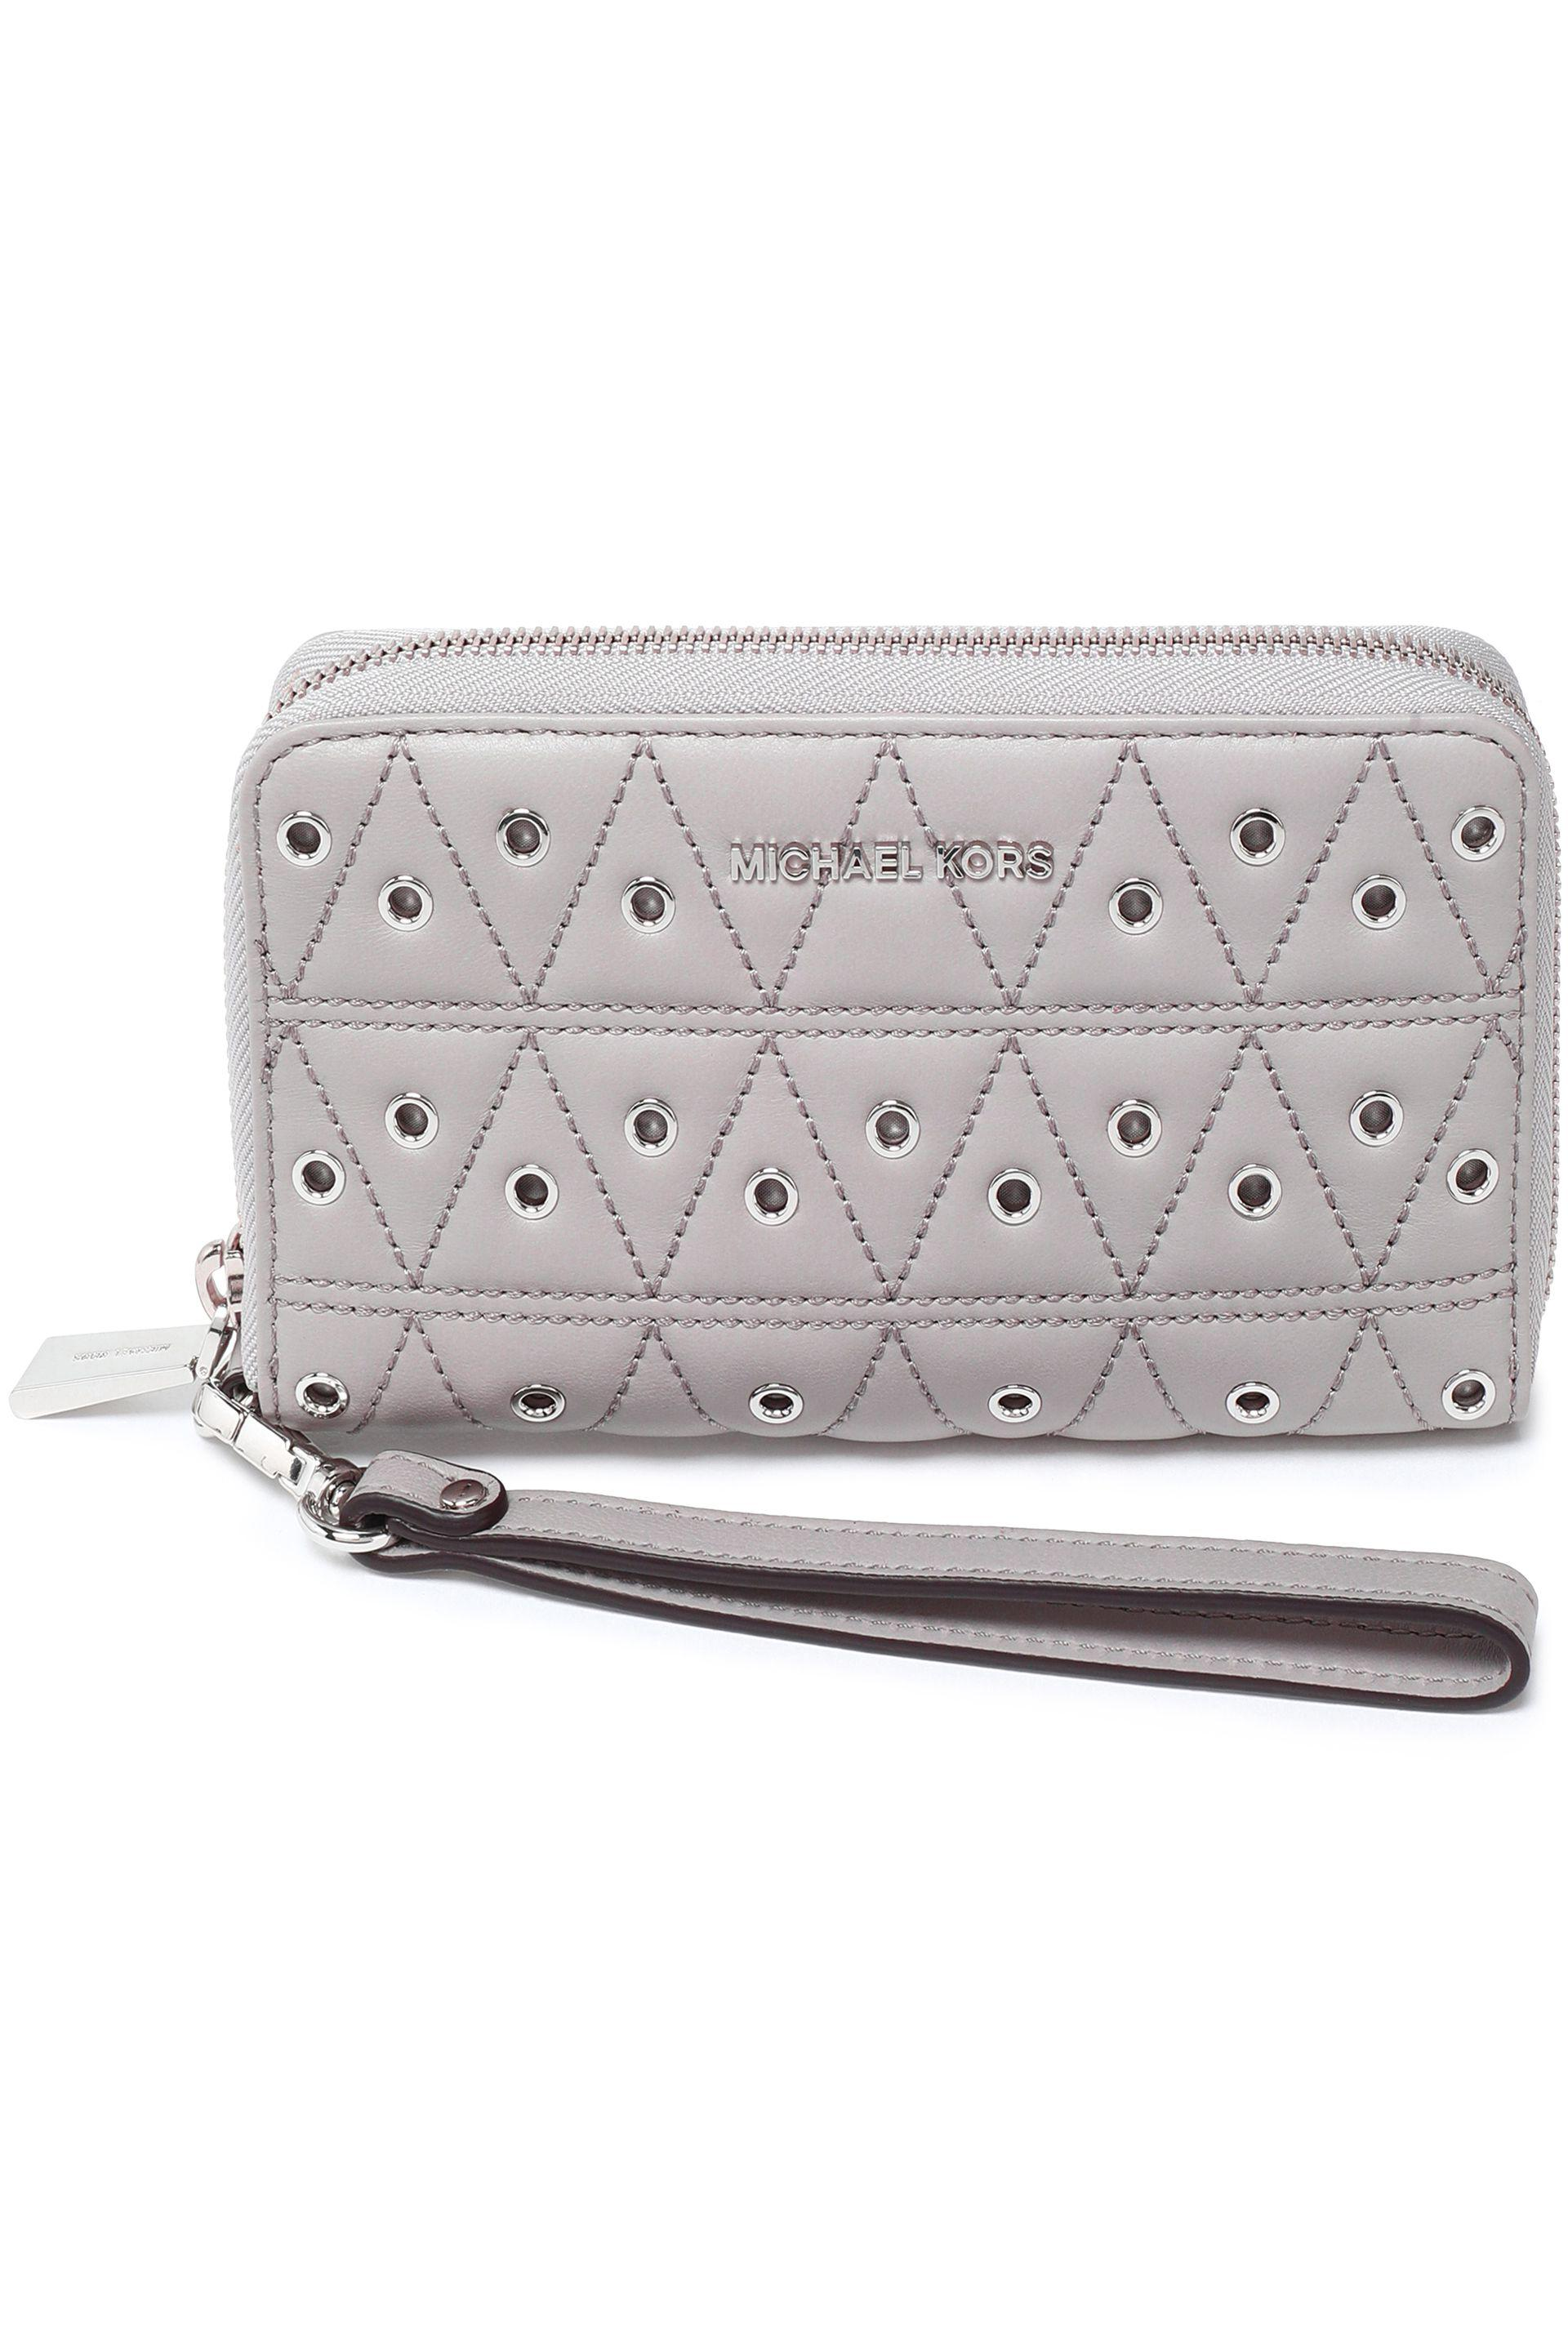 4878c26923646 ... purse with keyring; product image; michael michael kors eyelet  embellished quilted leather wall ...